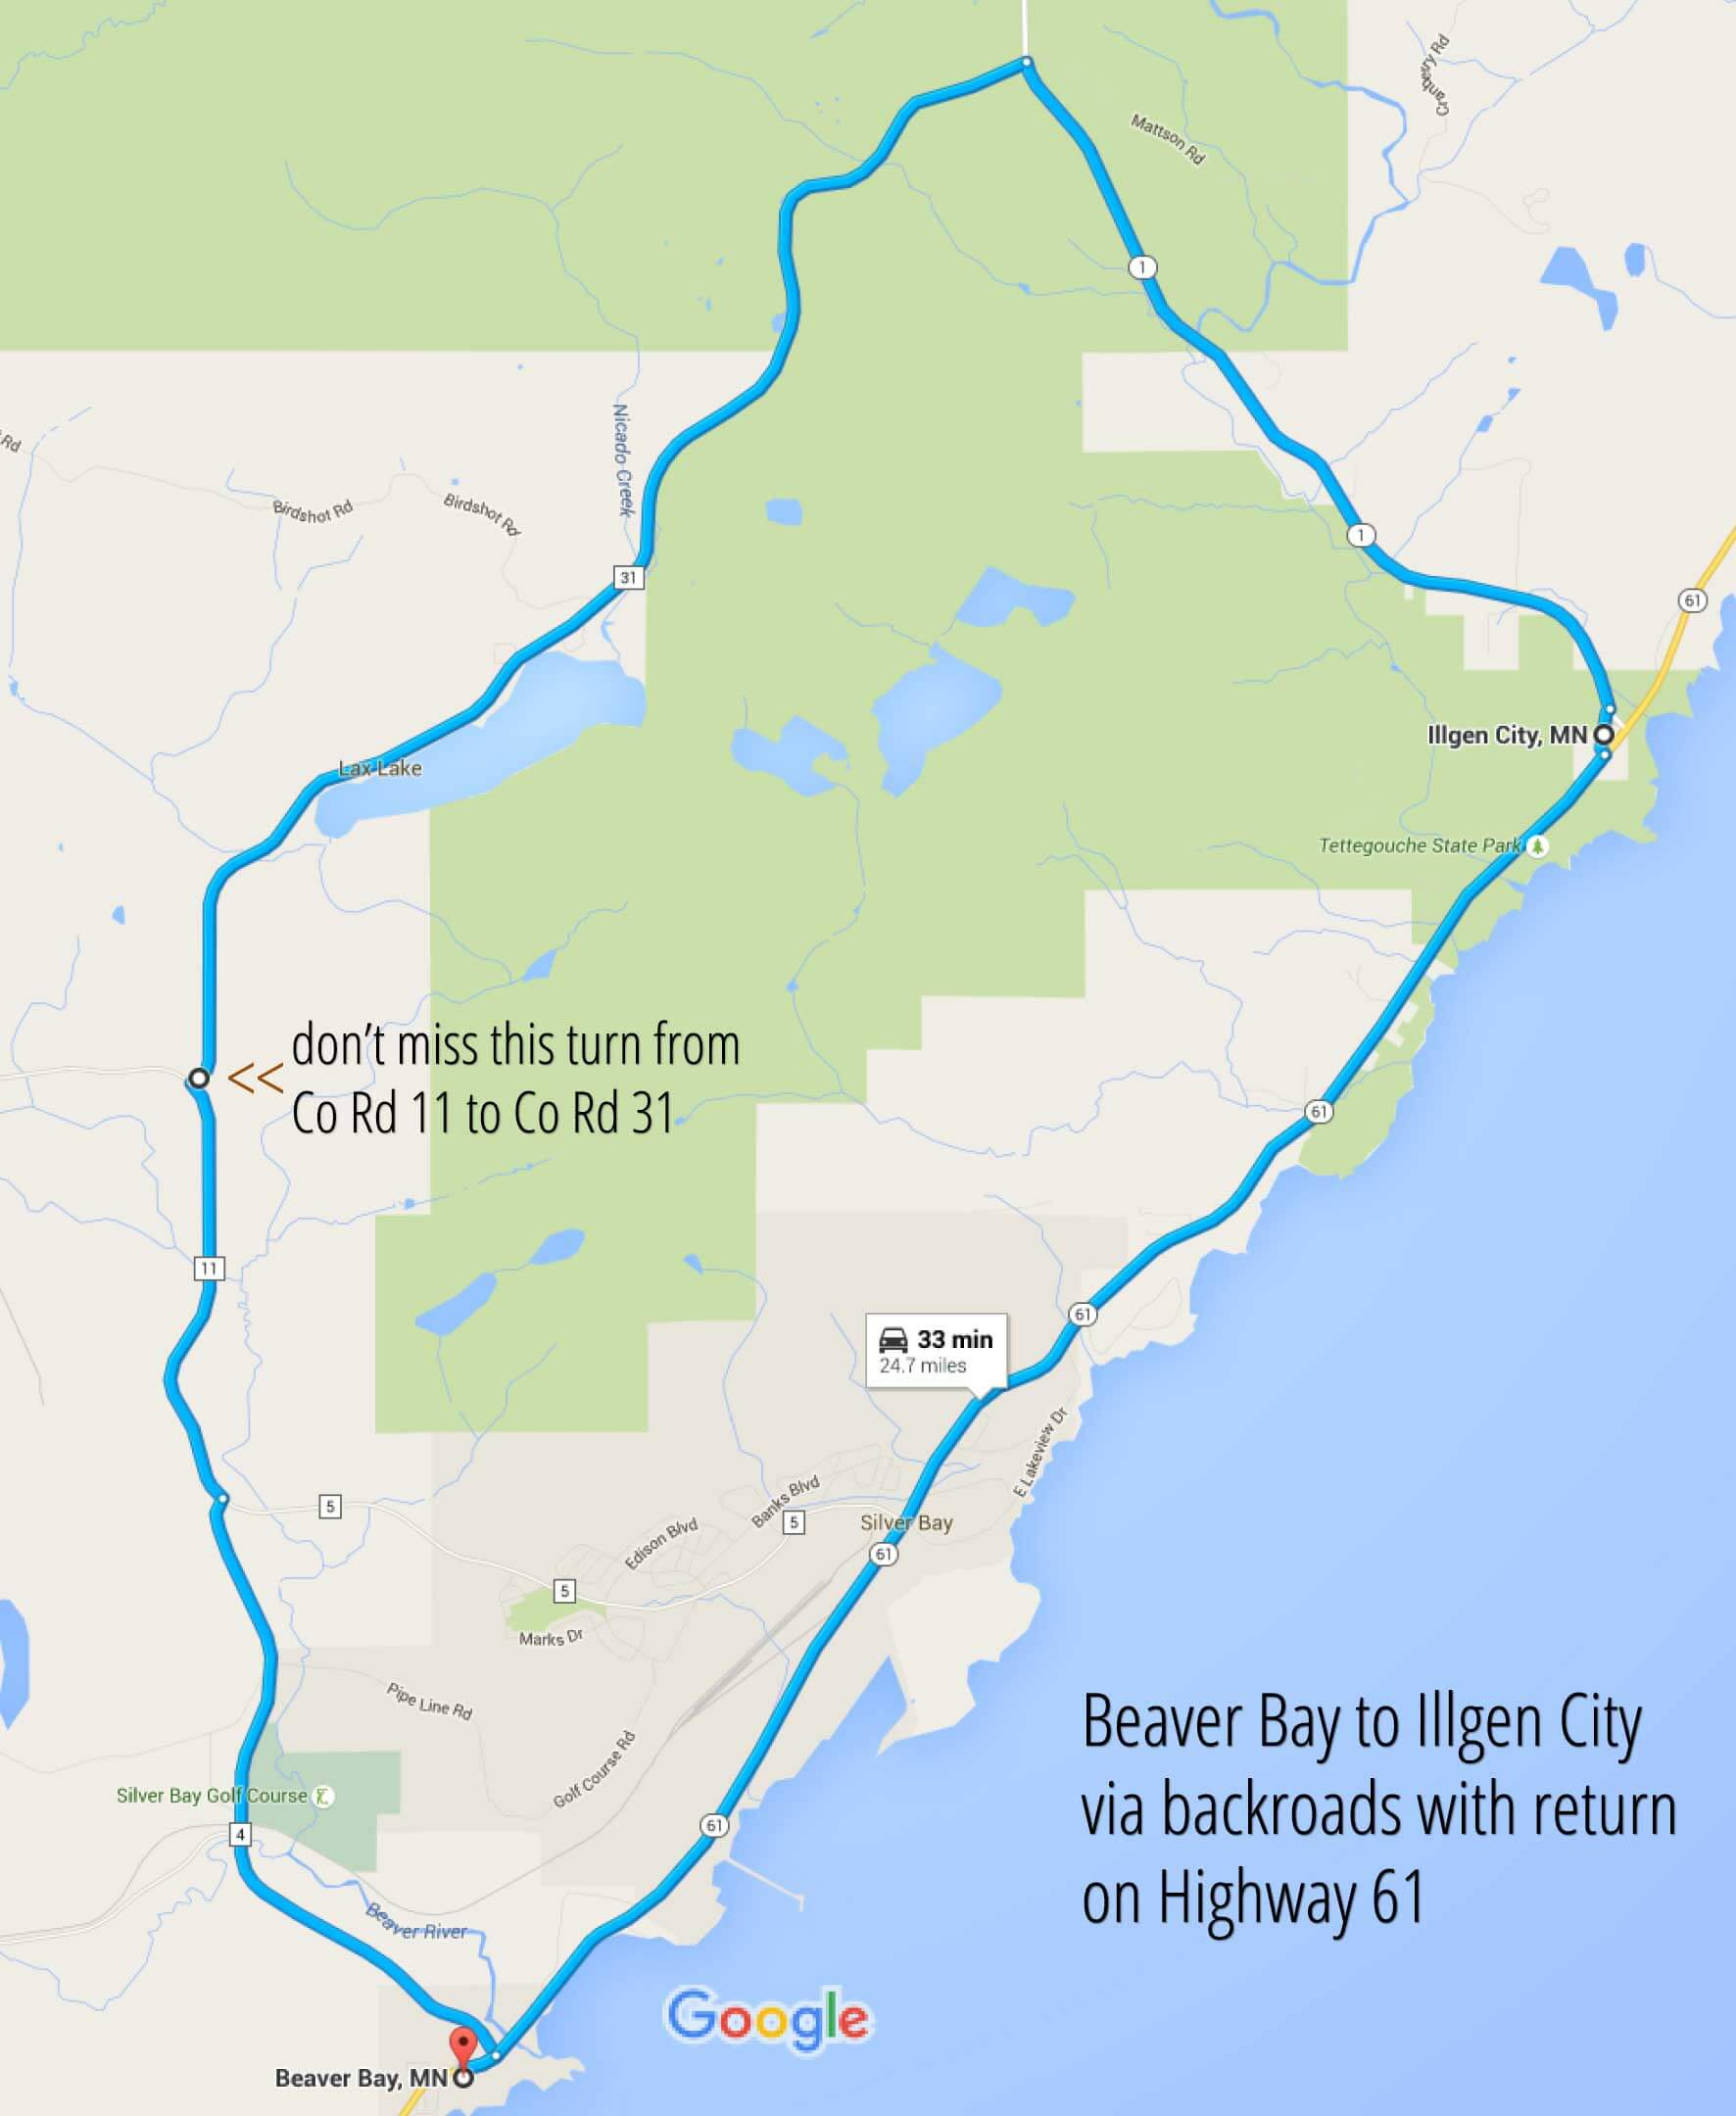 Beaver Bay to Illgen City